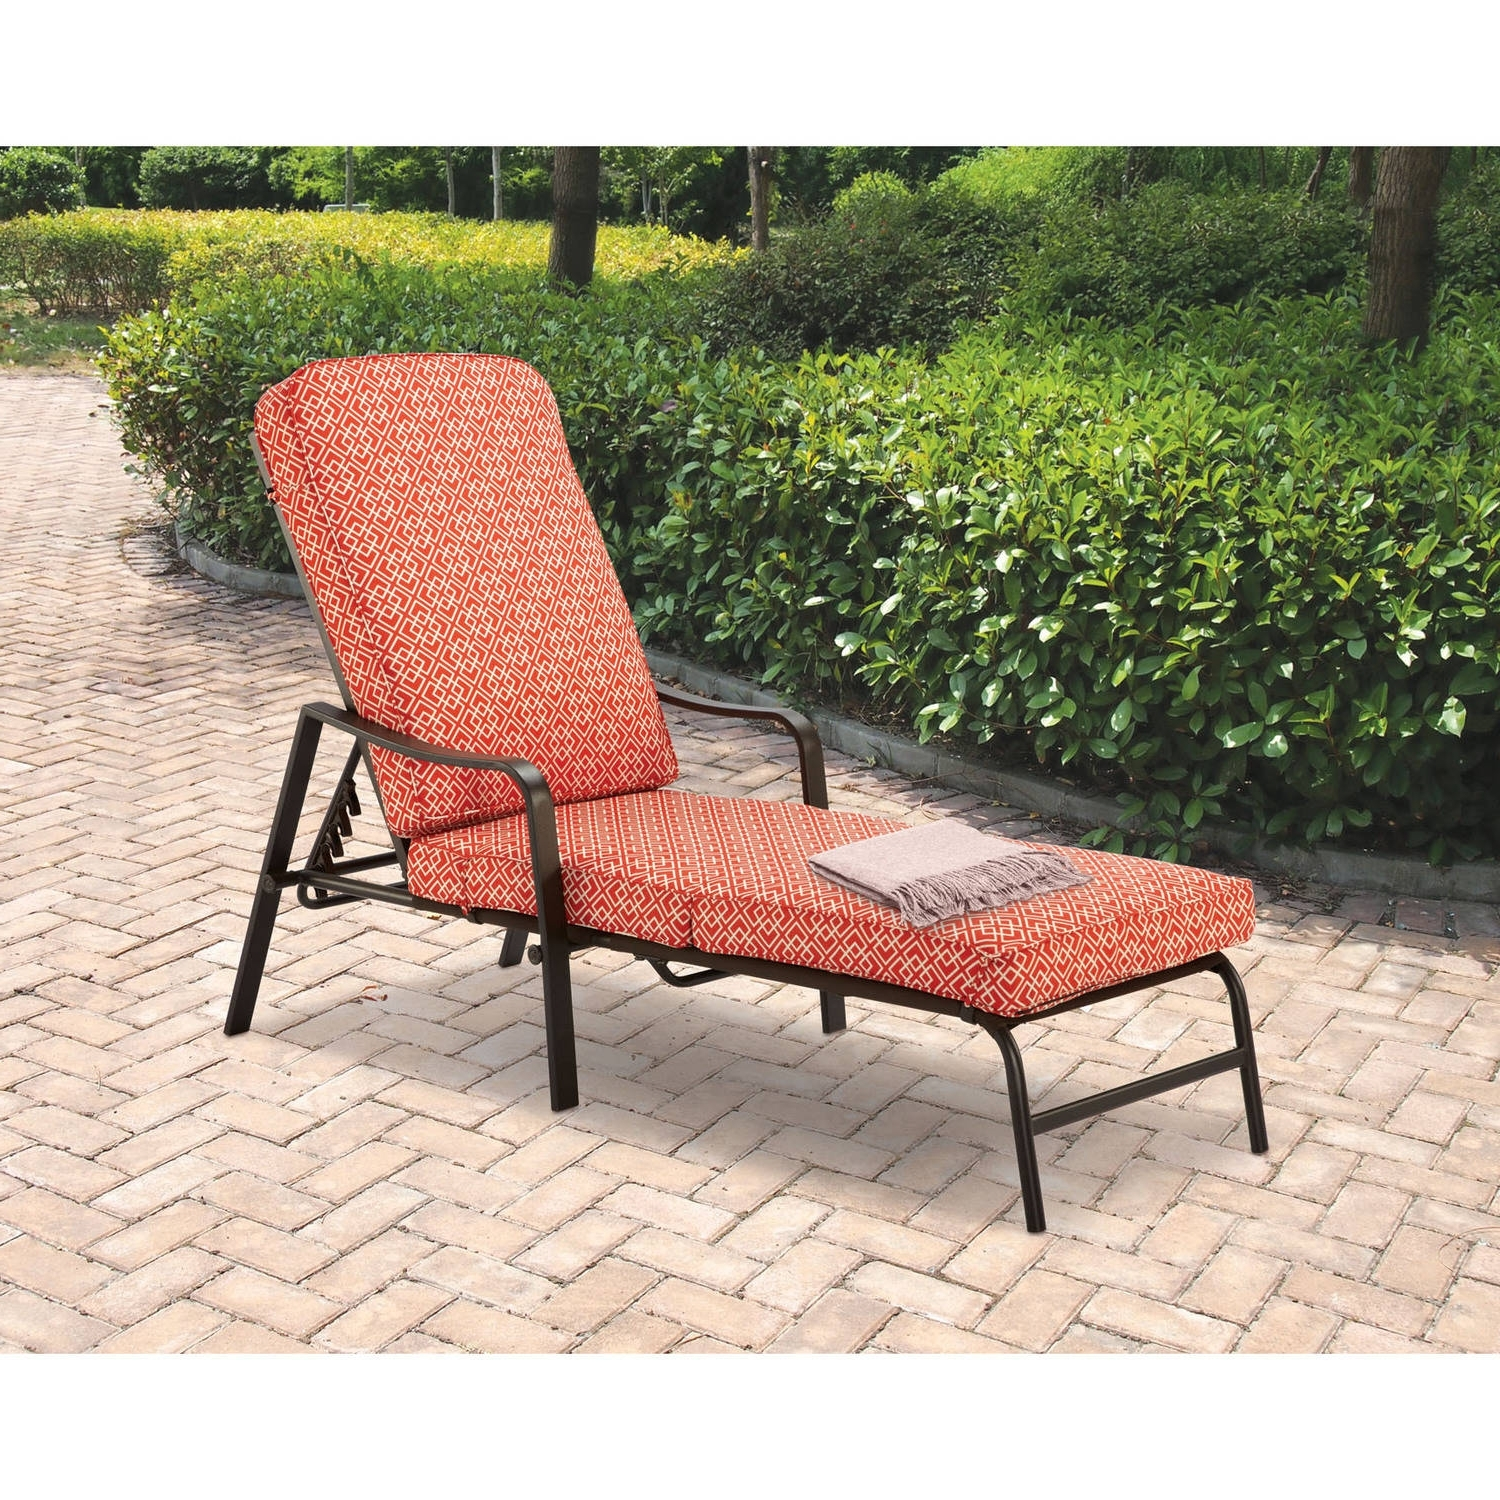 Mainstays Outdoor Chaise Lounge, Orange Geo Pattern – Walmart Throughout Latest Chaise Lounge Chair Outdoor Cushions (View 13 of 15)